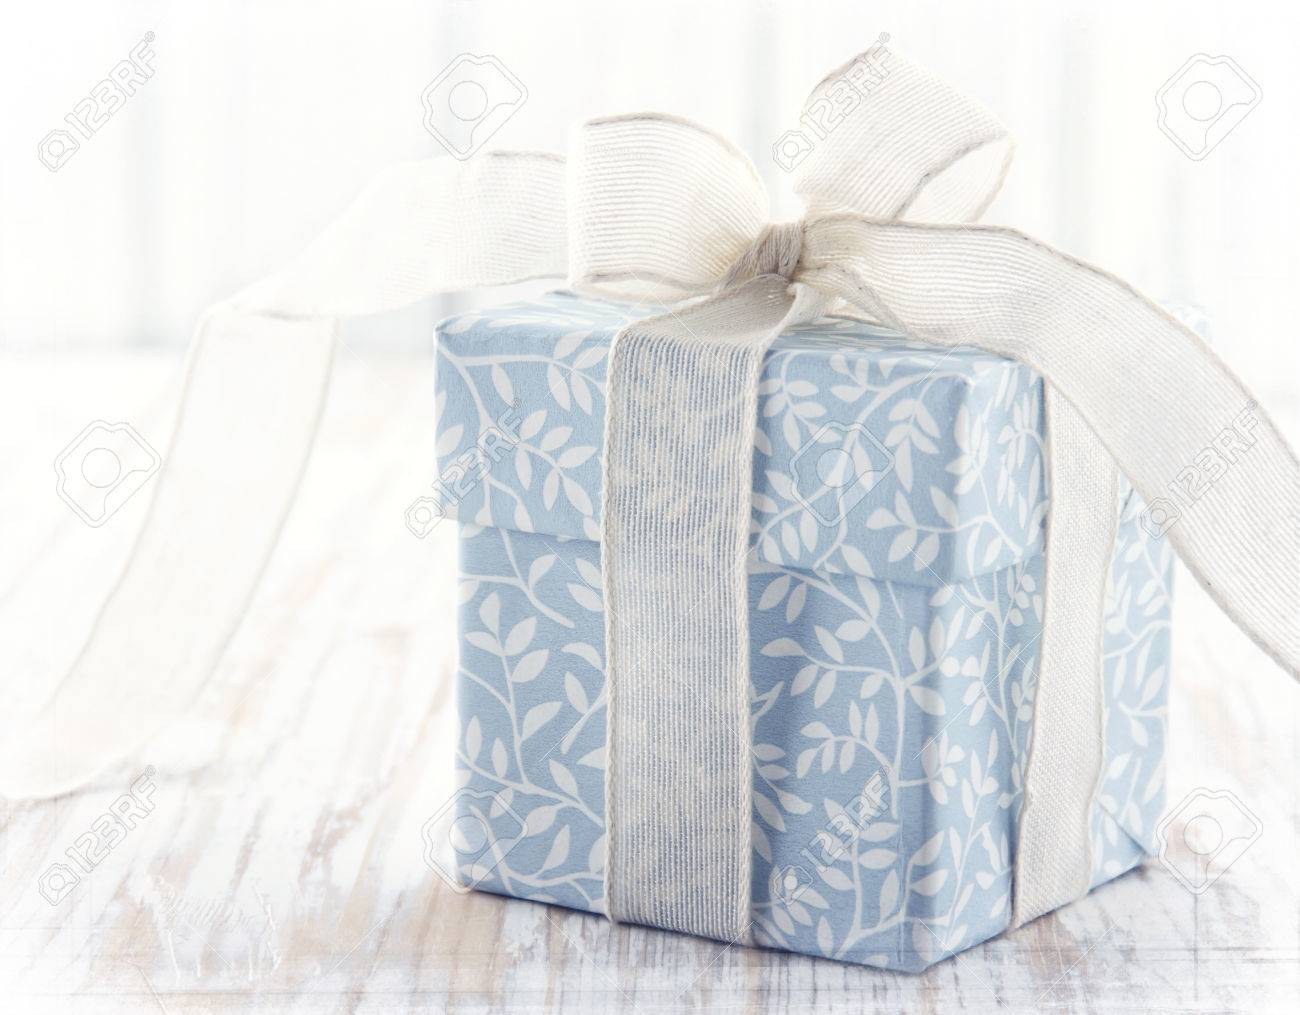 Light Blue Floral Gift Box Tied Up With White Ribbon And Pink Flower On Rustic Wooden